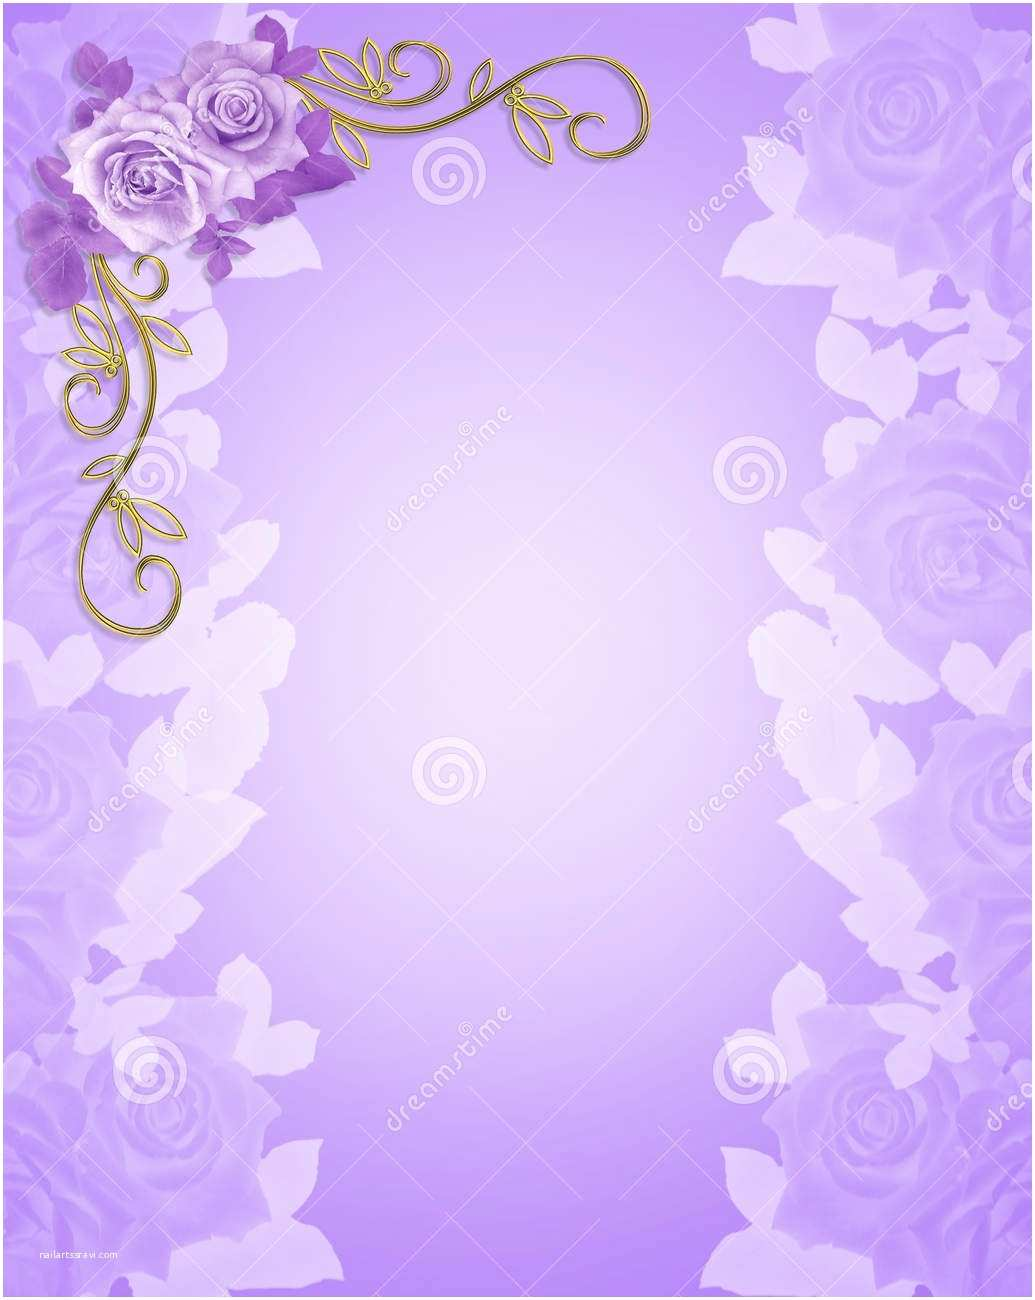 Wedding Invitation Pictures Background Wedding Invitation Background Designs Purple Yaseen for